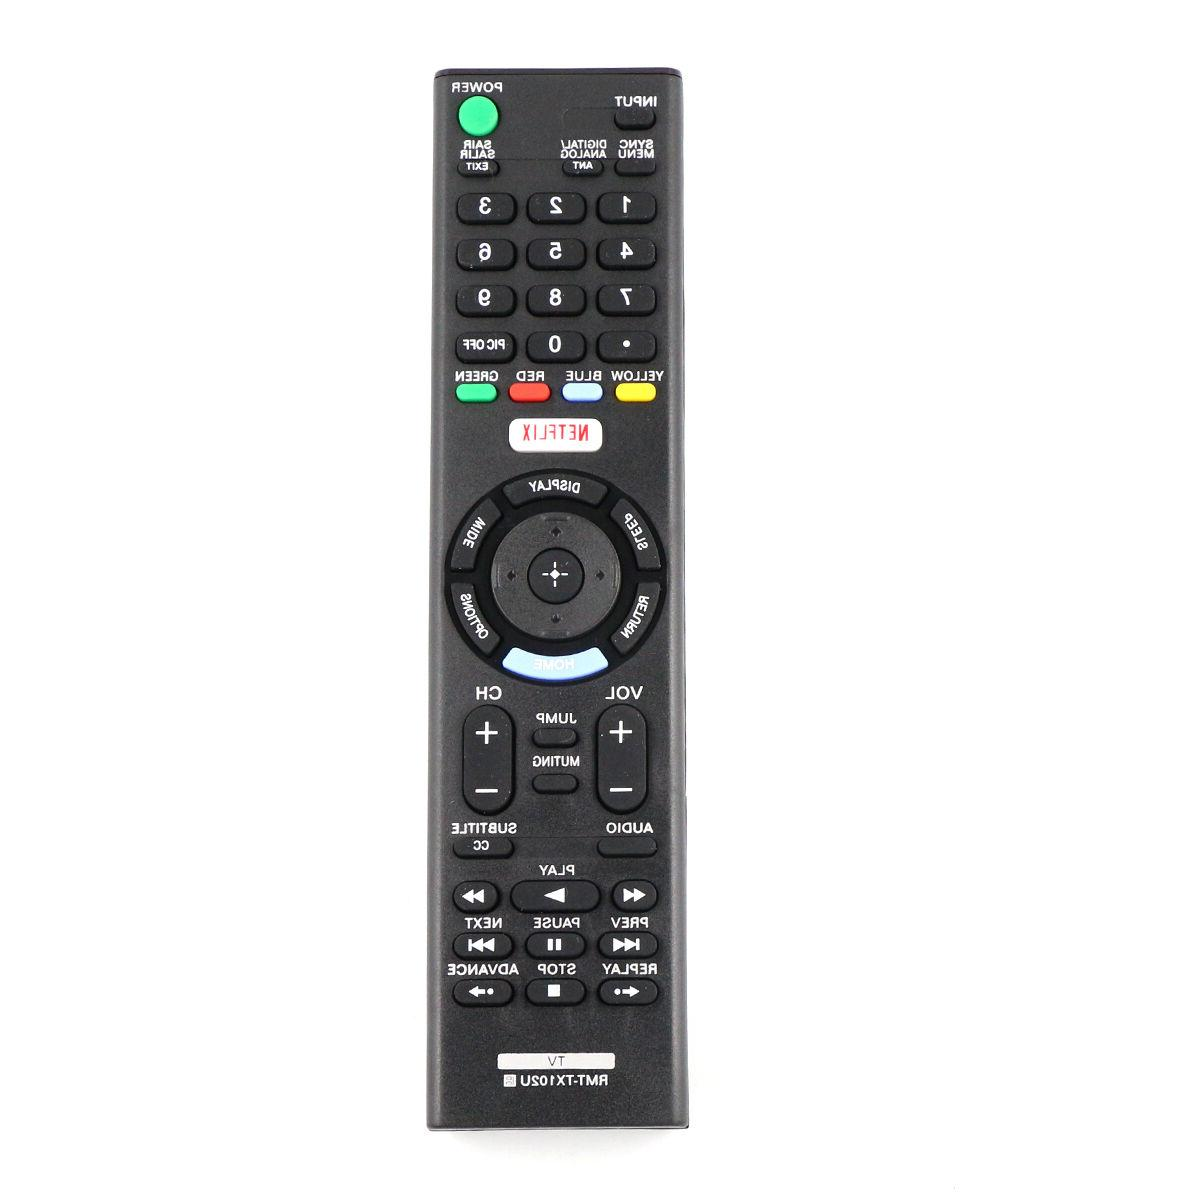 New RMT-TX102U Replaced Remote for Sony TV KDL-48W650D KDL-3